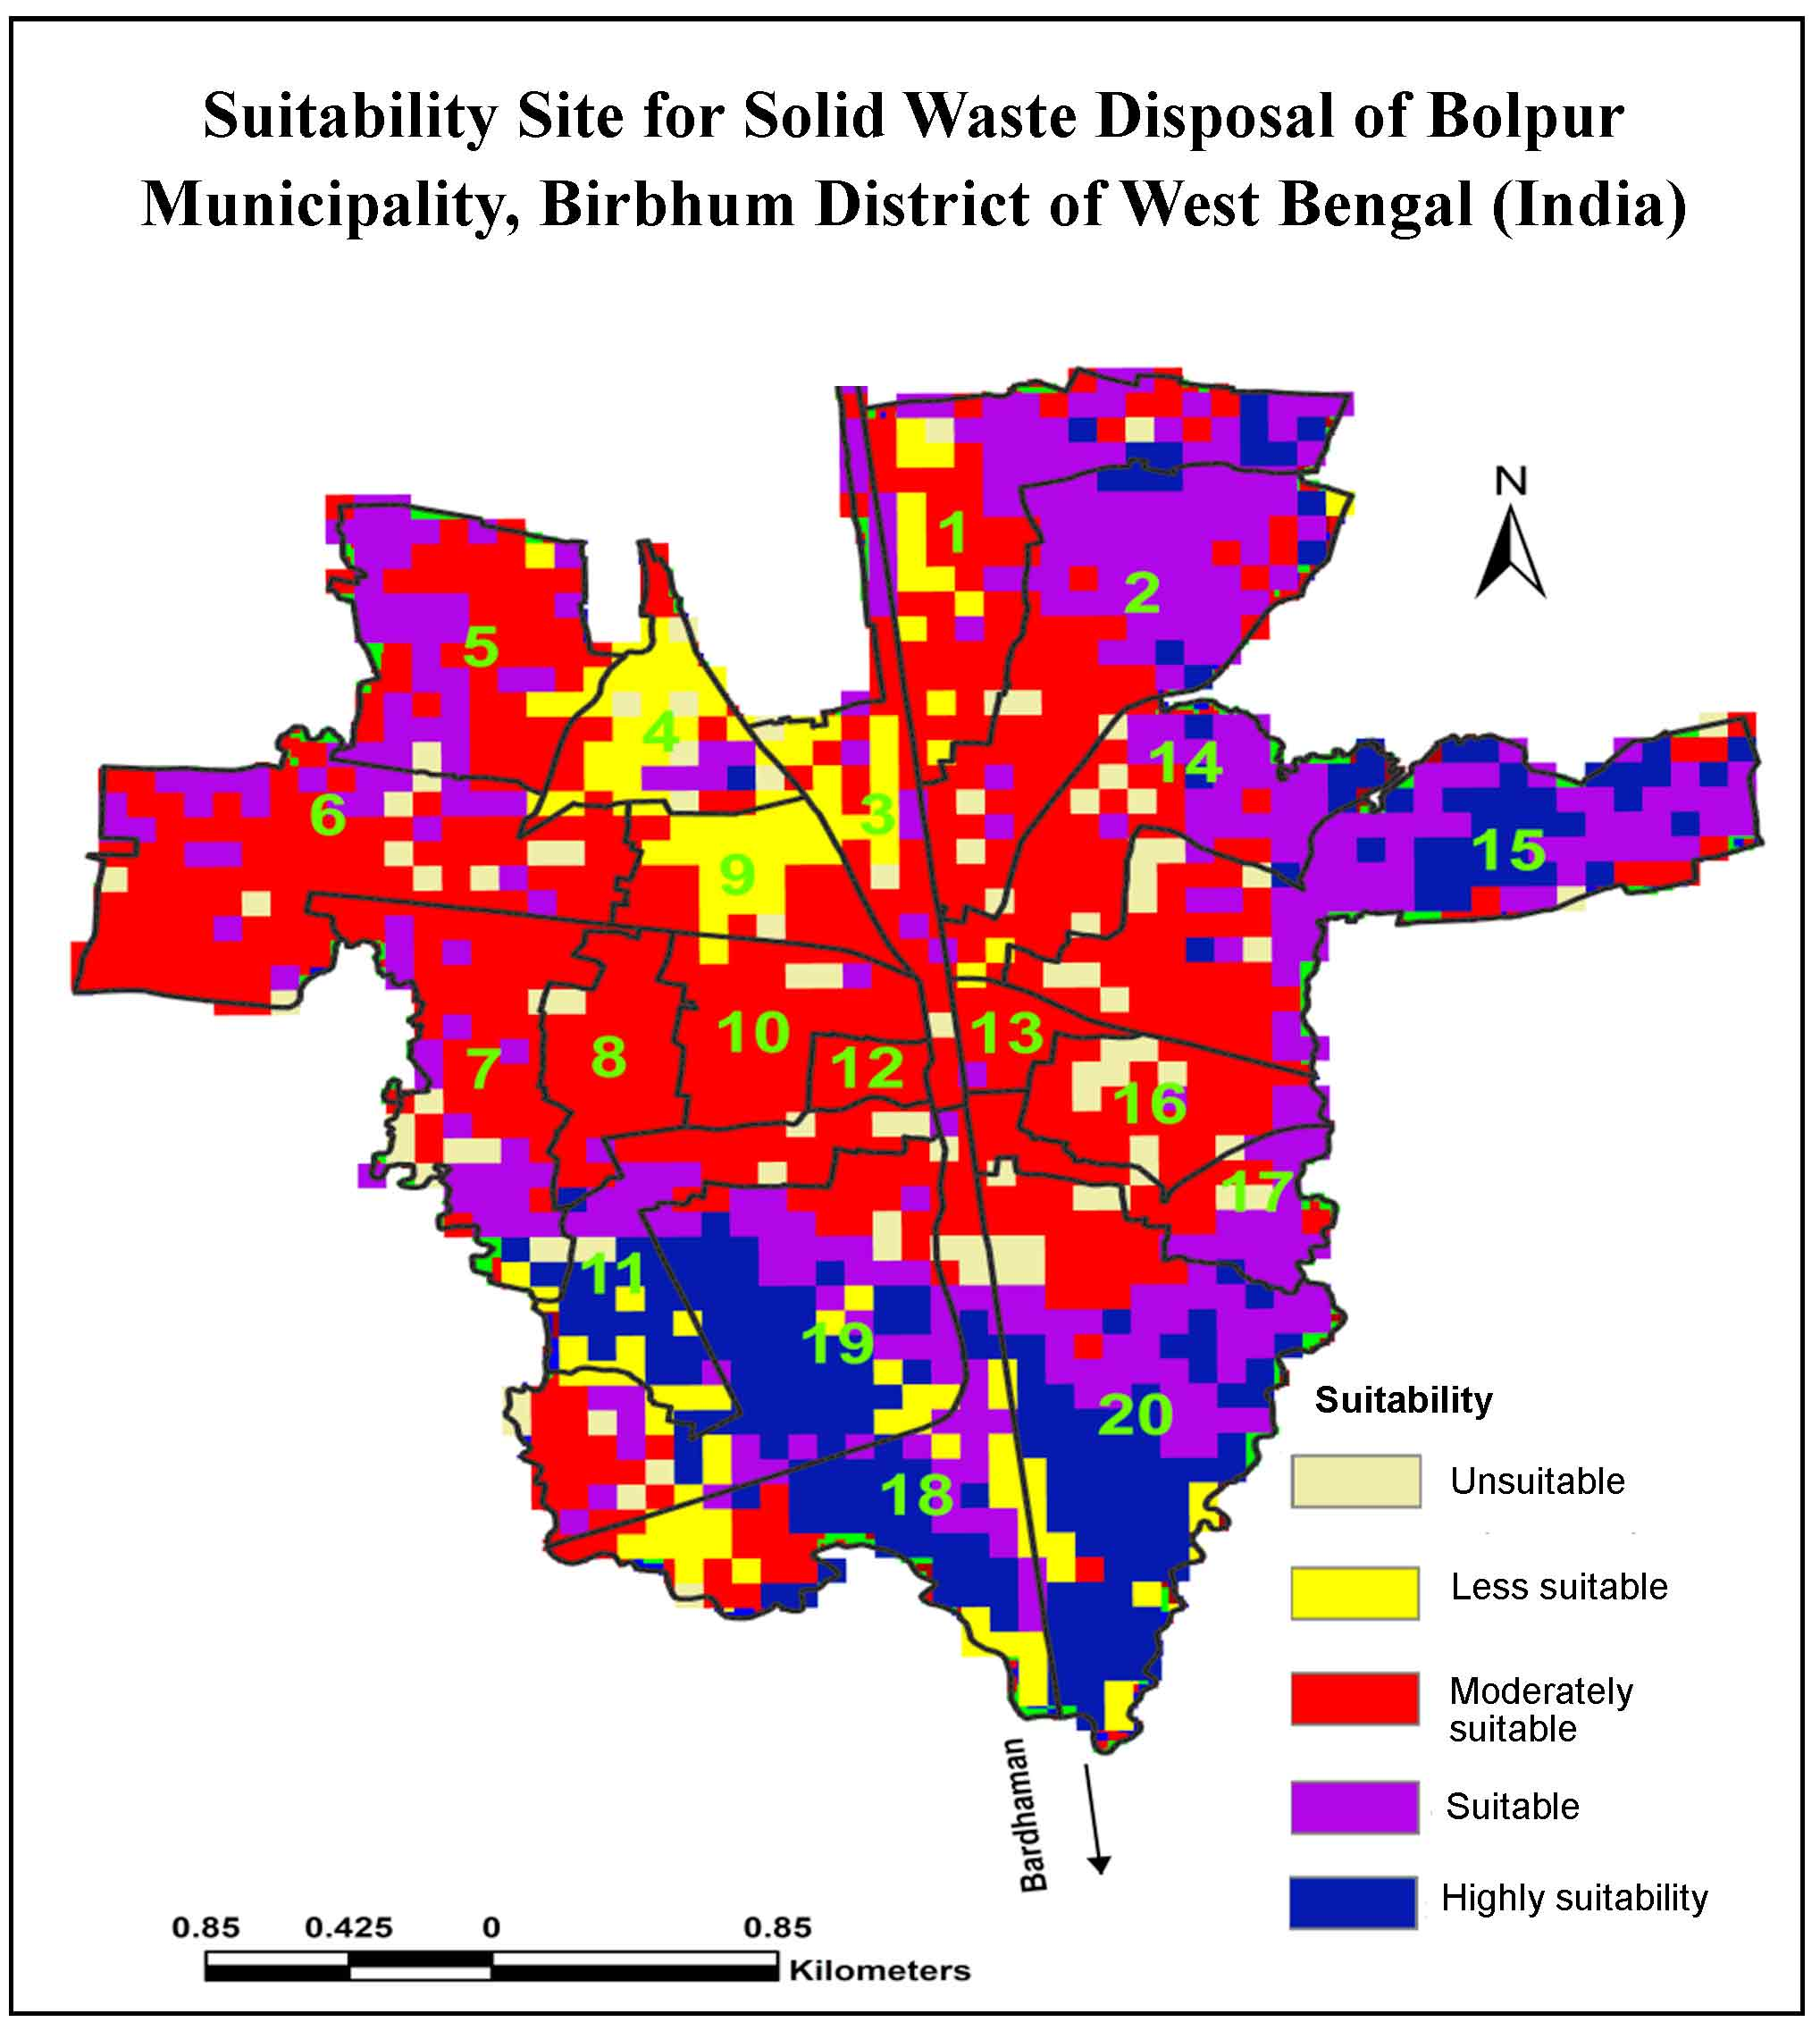 Site Suitability Analysis for Solid Waste Disposal of Bolpur Municipality, Birbhum District of West Bengal (India): Remote Sensing and AHP Approach